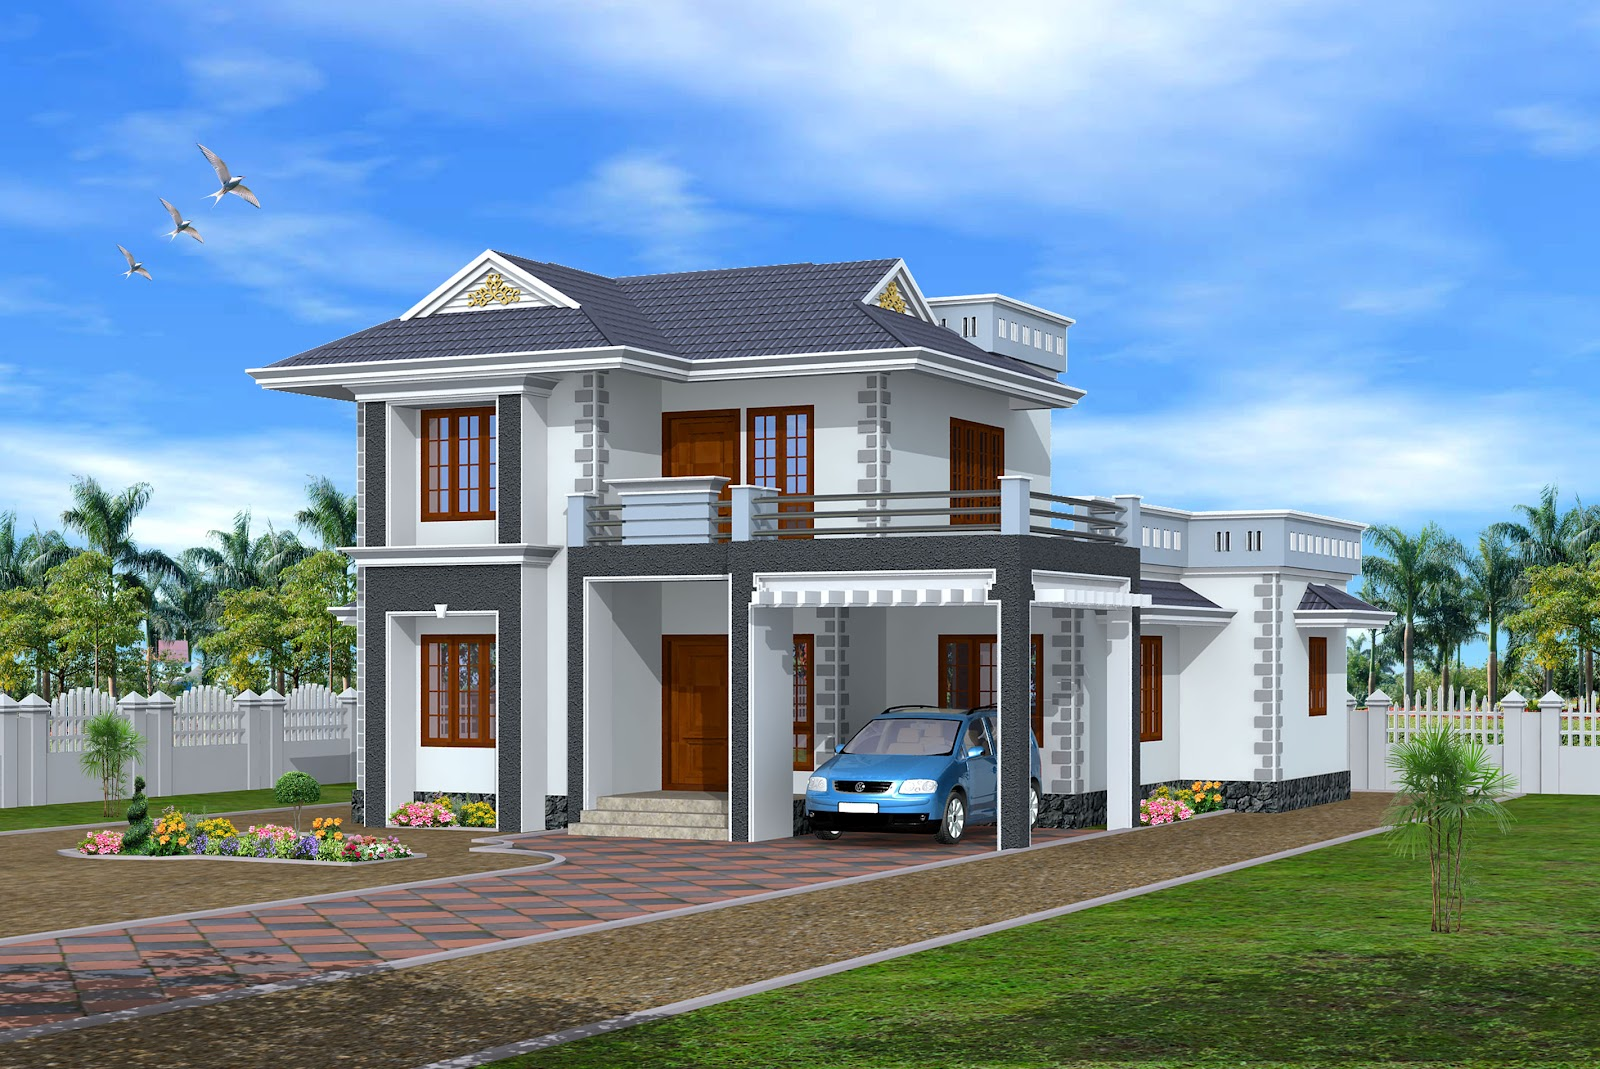 New home designs latest modern homes exterior designs views for Exterior design program